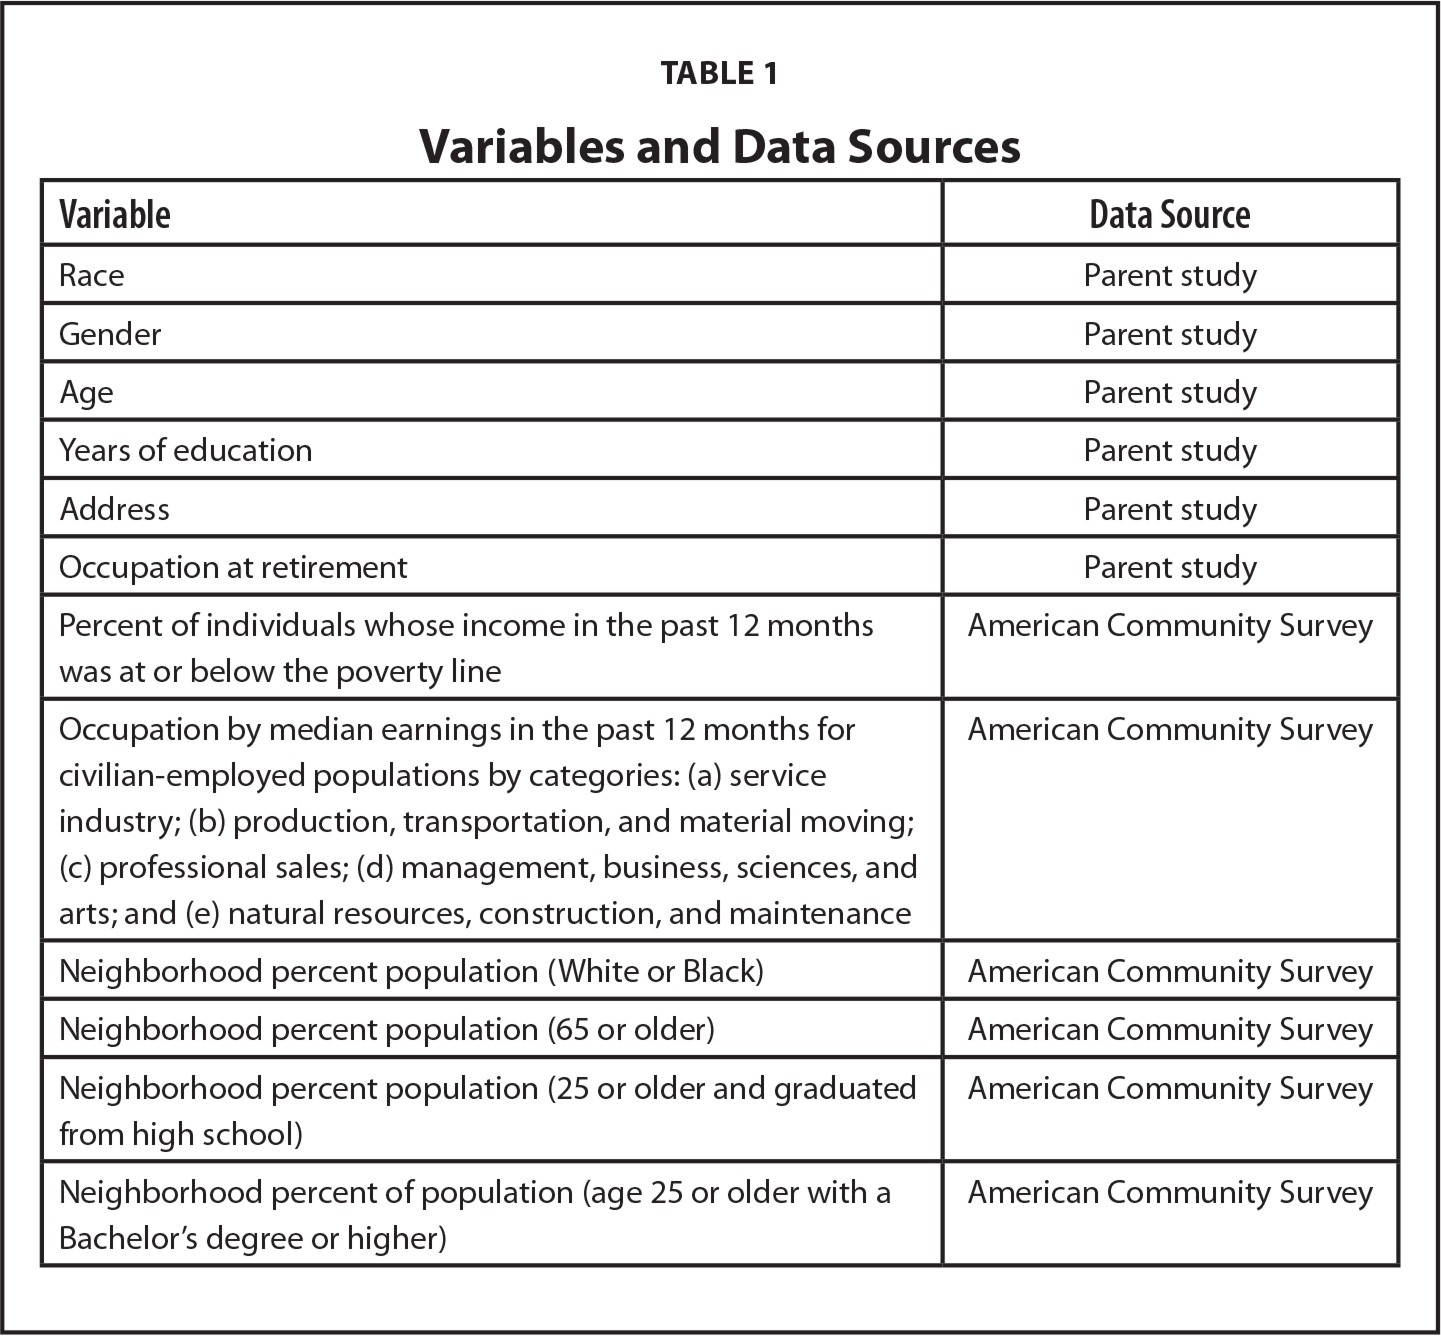 Variables and Data Sources